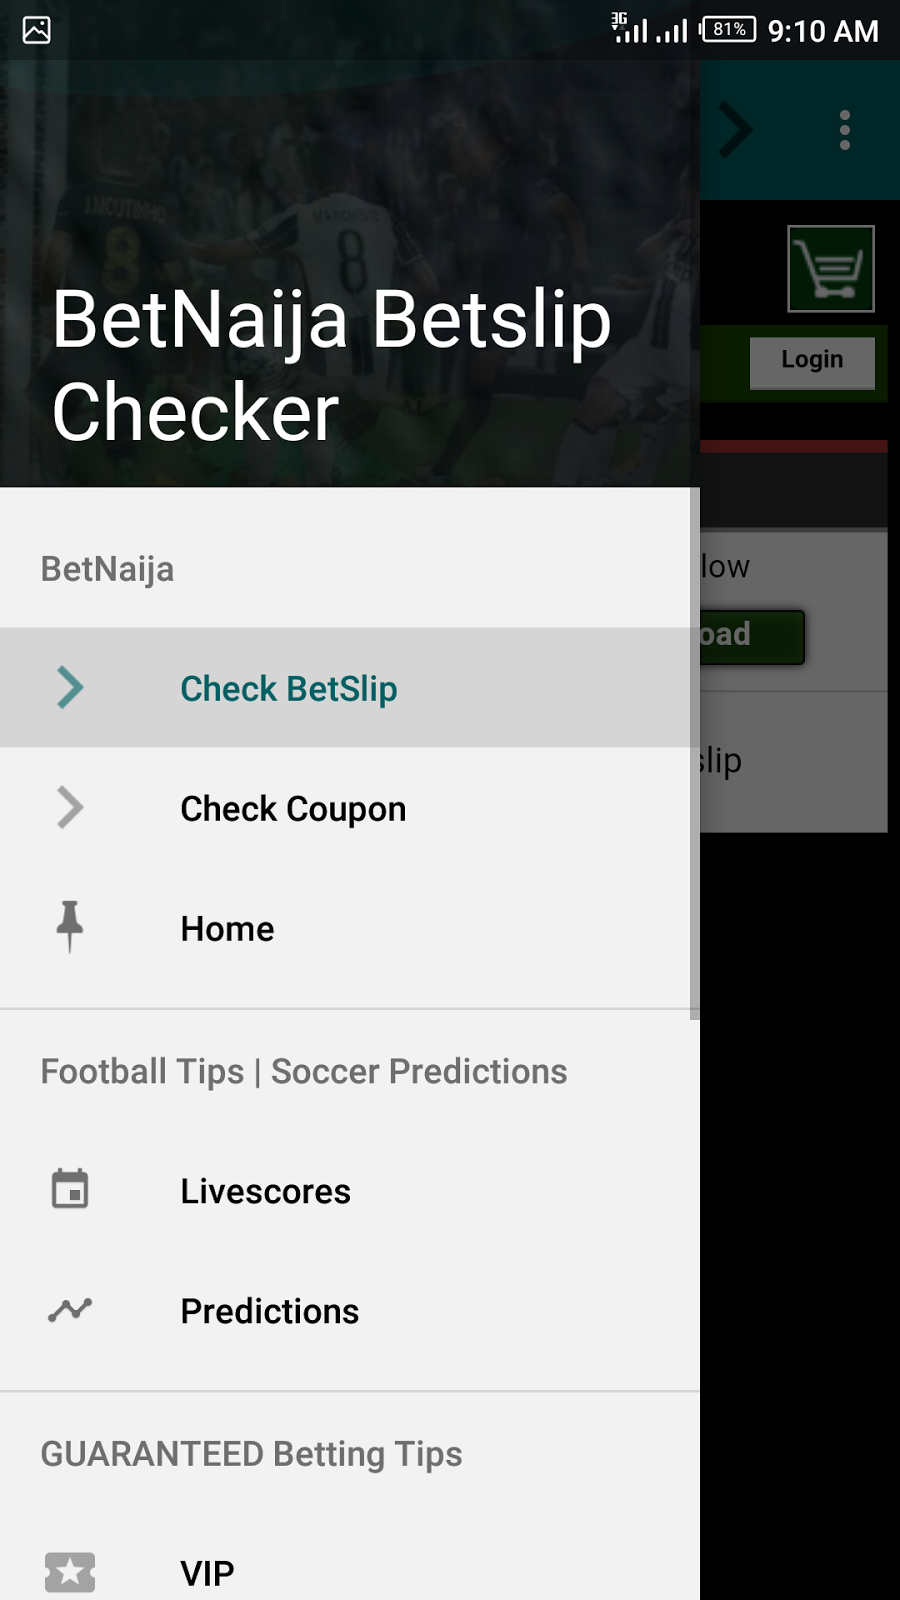 Try These Bet9ja Mobile Live Scores Today {Mahindra Racing}